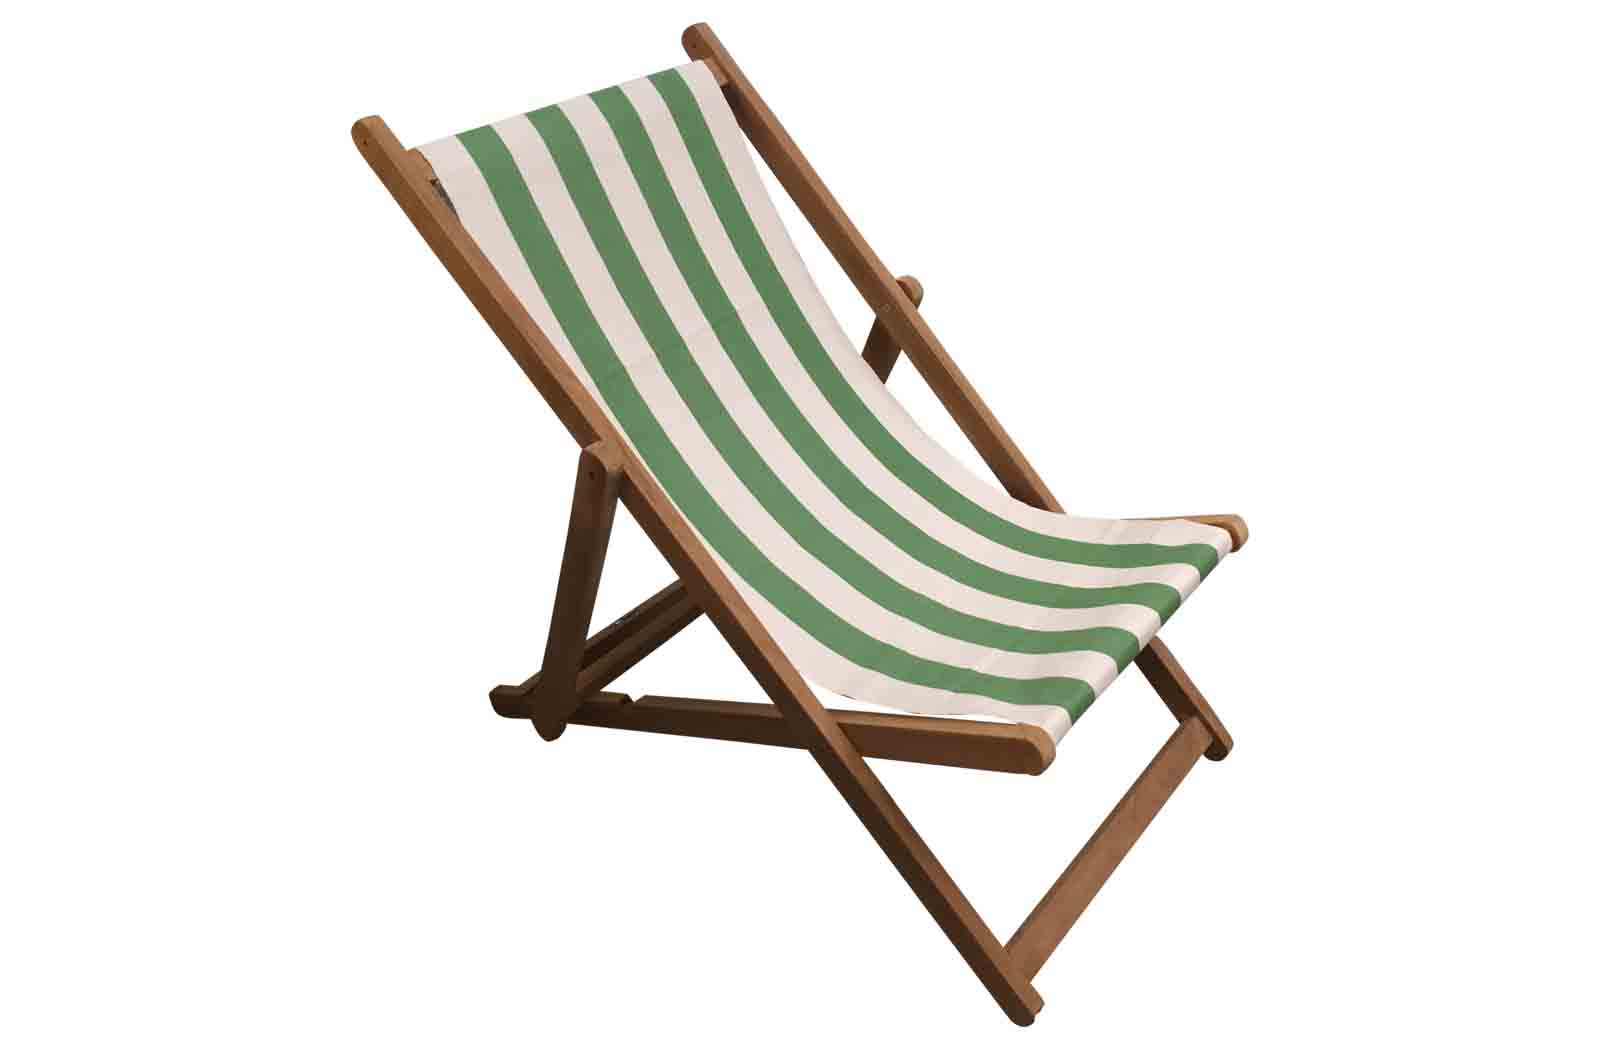 Green and White Stripe Deckchairs | Folding Wooden Deck Chairs - Pole Vault Stripe